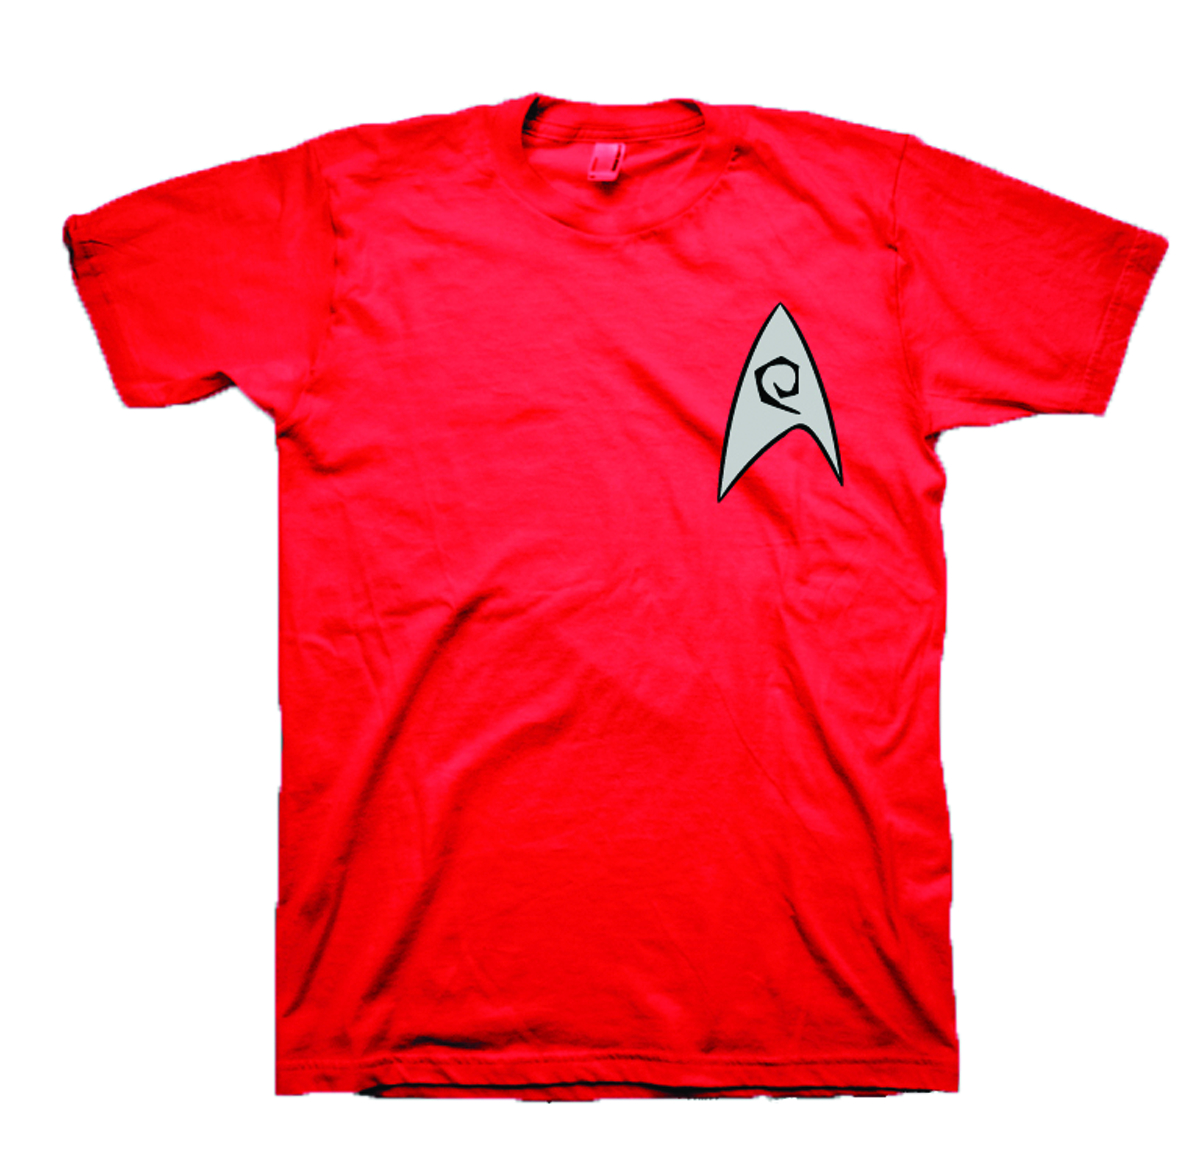 STAR TREK RED SHIRT COSTUME T/S XL